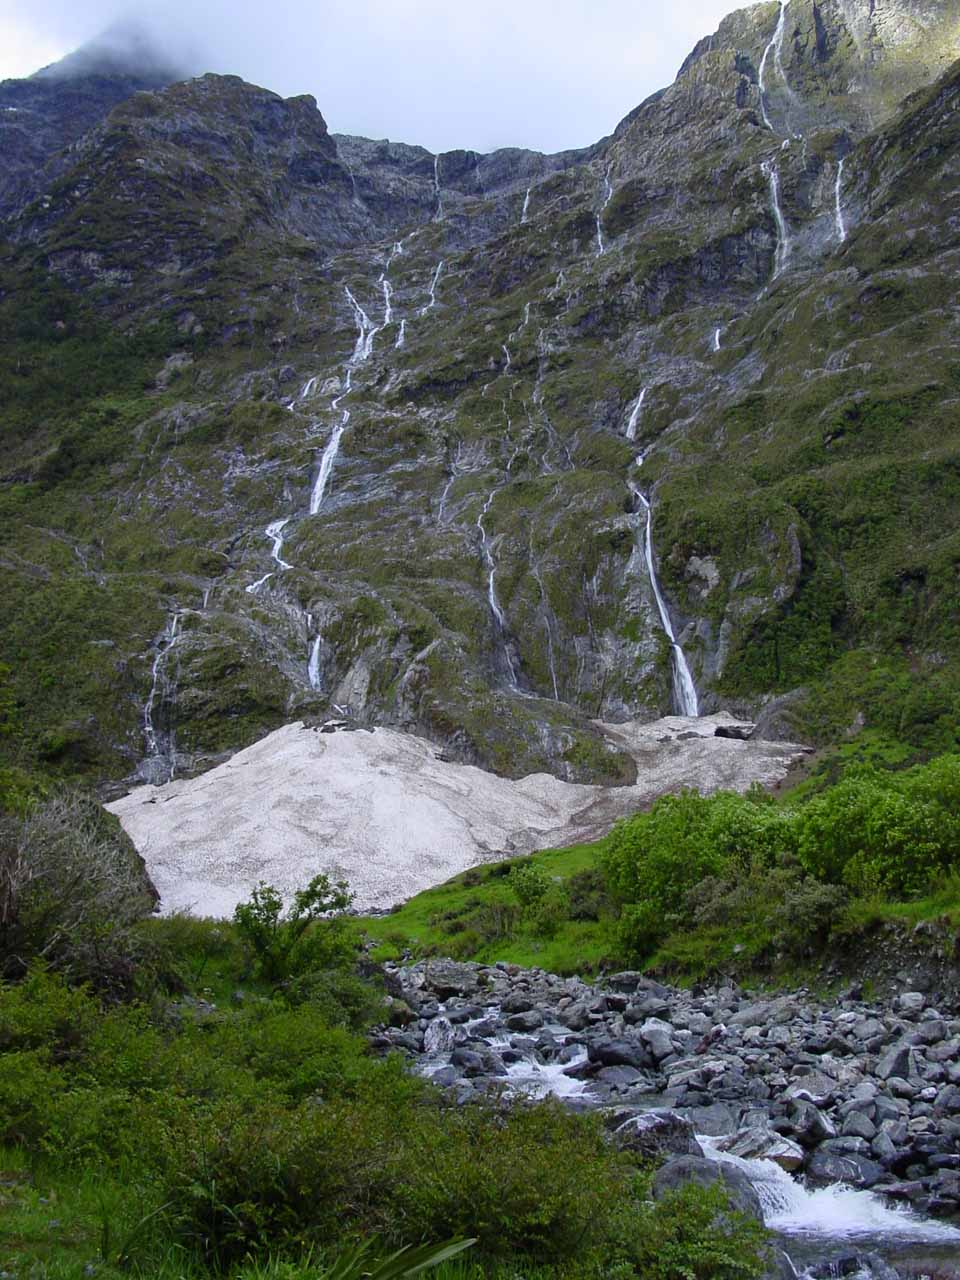 A series of waterfalls seen at the start of Day 3 of the Milford Track